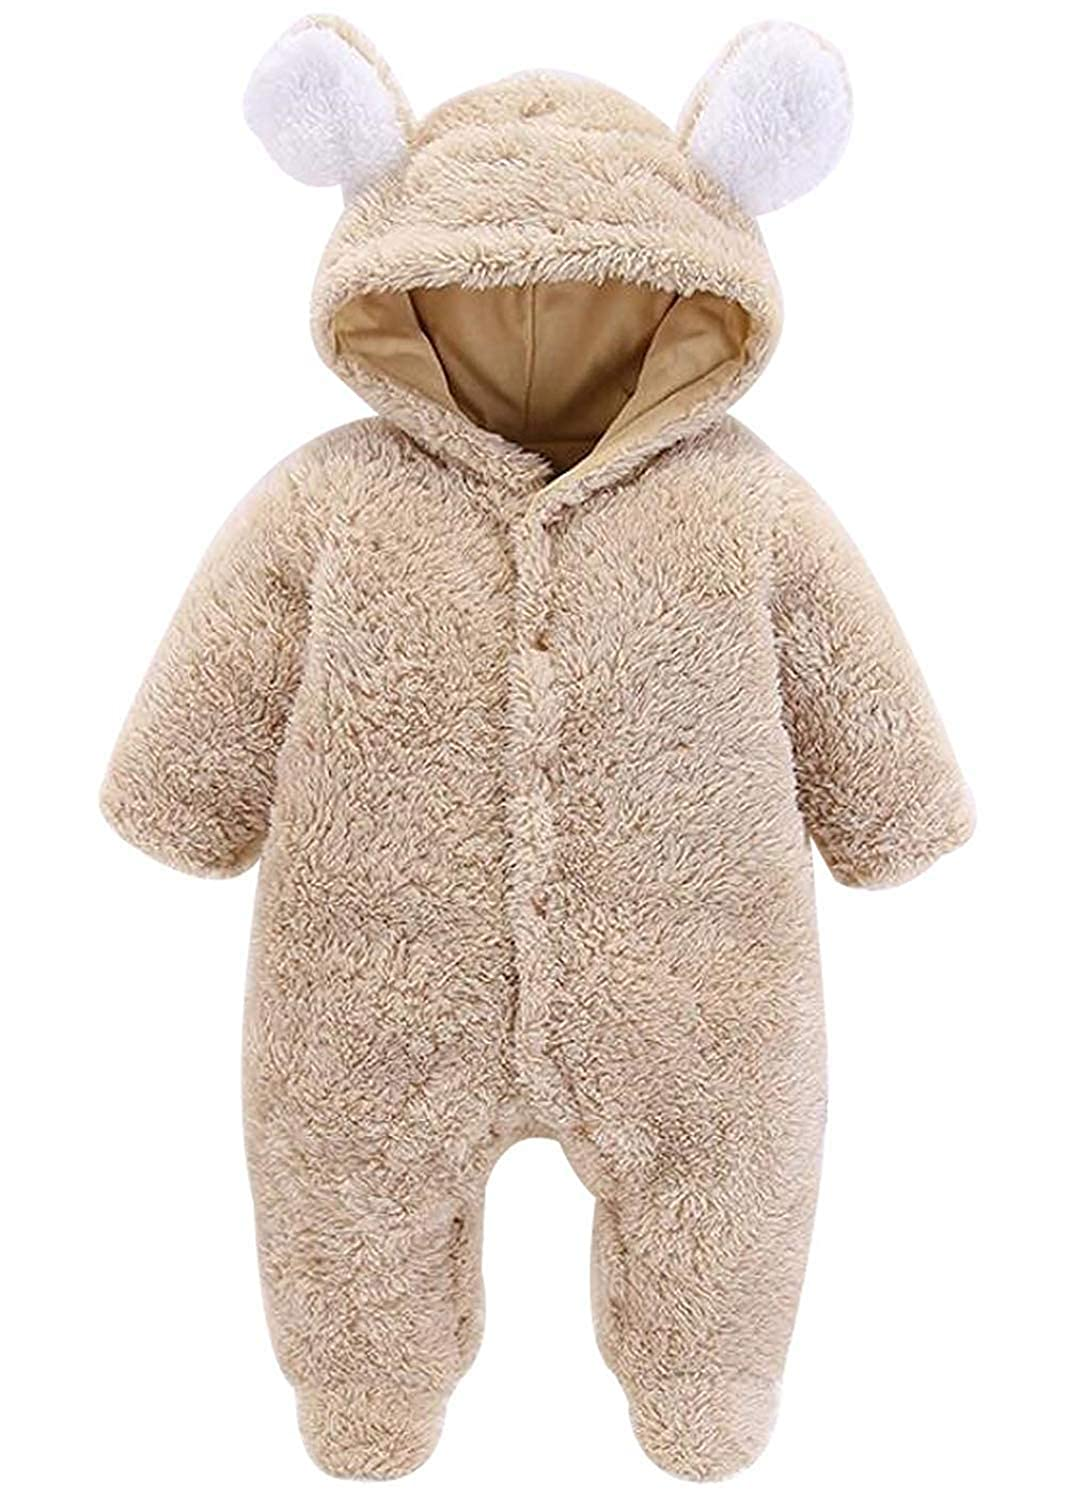 e-youth Baby Boys Girls Hooded Romper Warm Fleece Jumpsuit Outfits